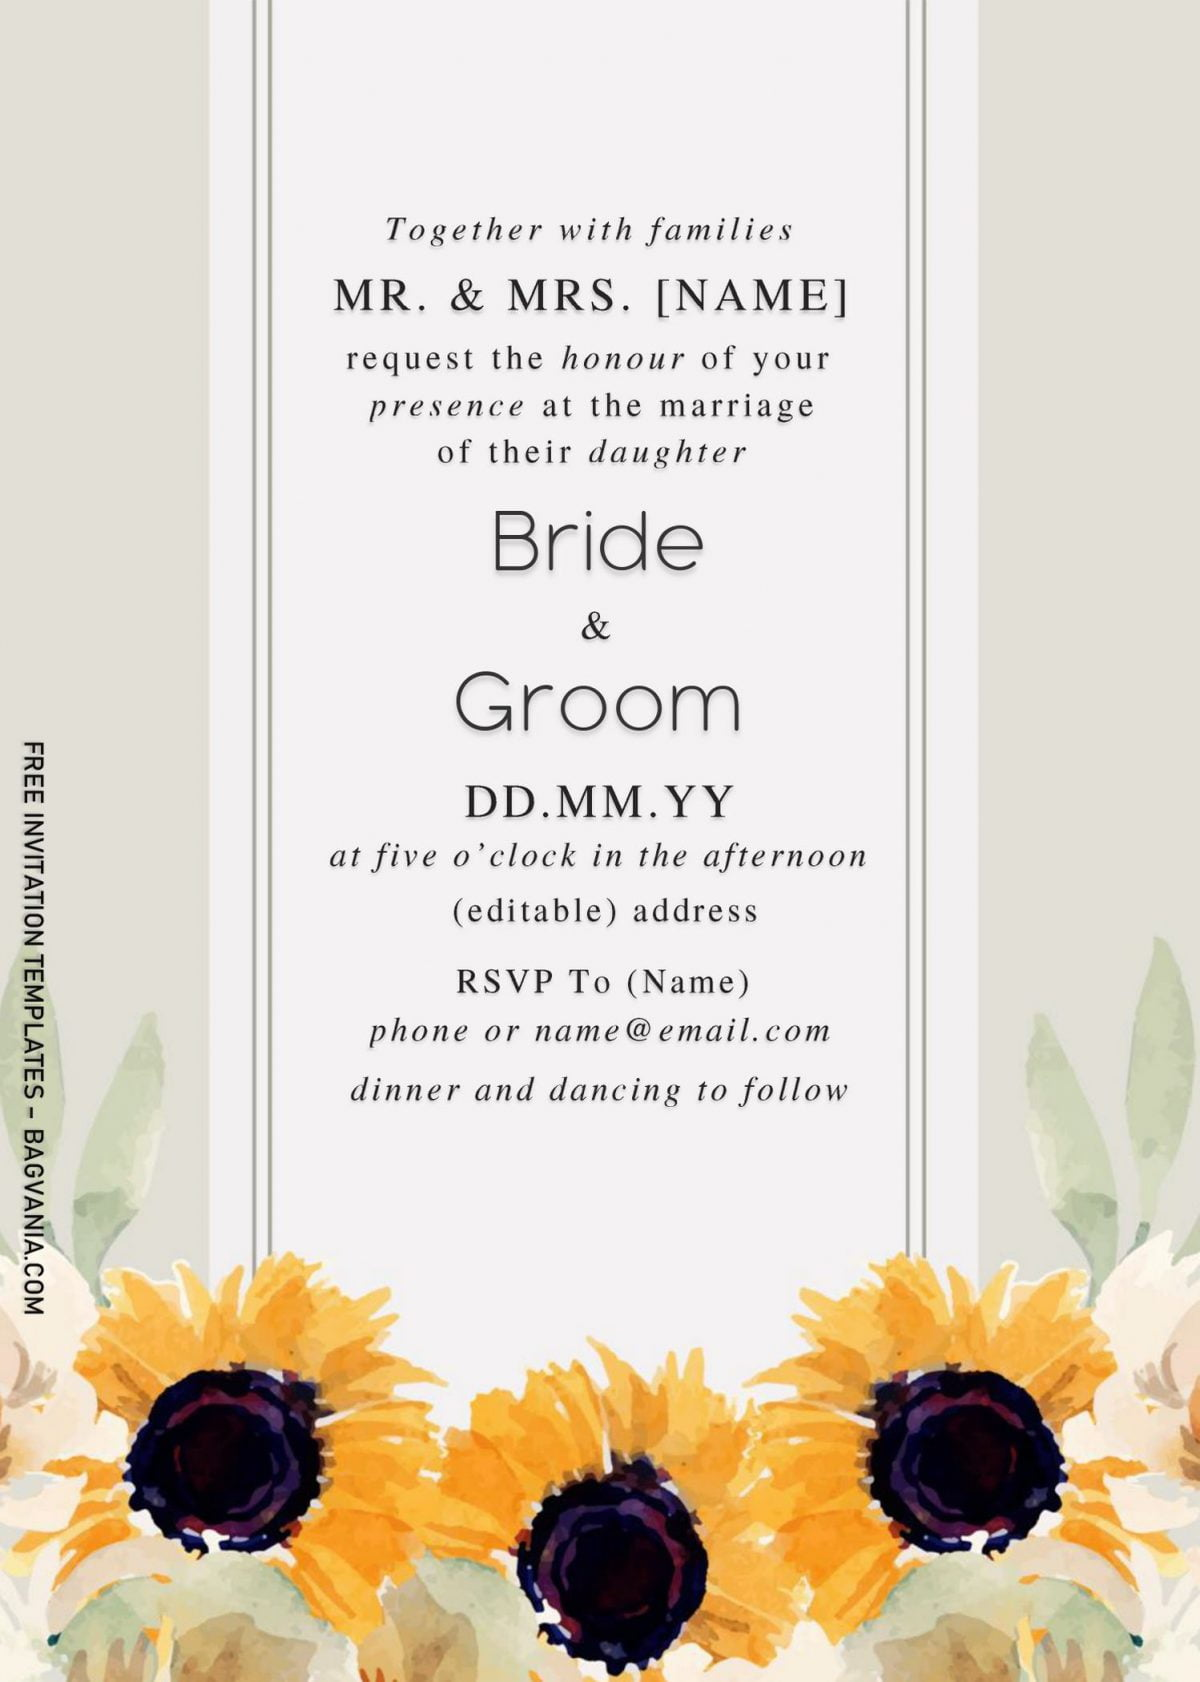 Sunflower Wedding Invitation Templates - Editable With Microsoft Word and has portrait design